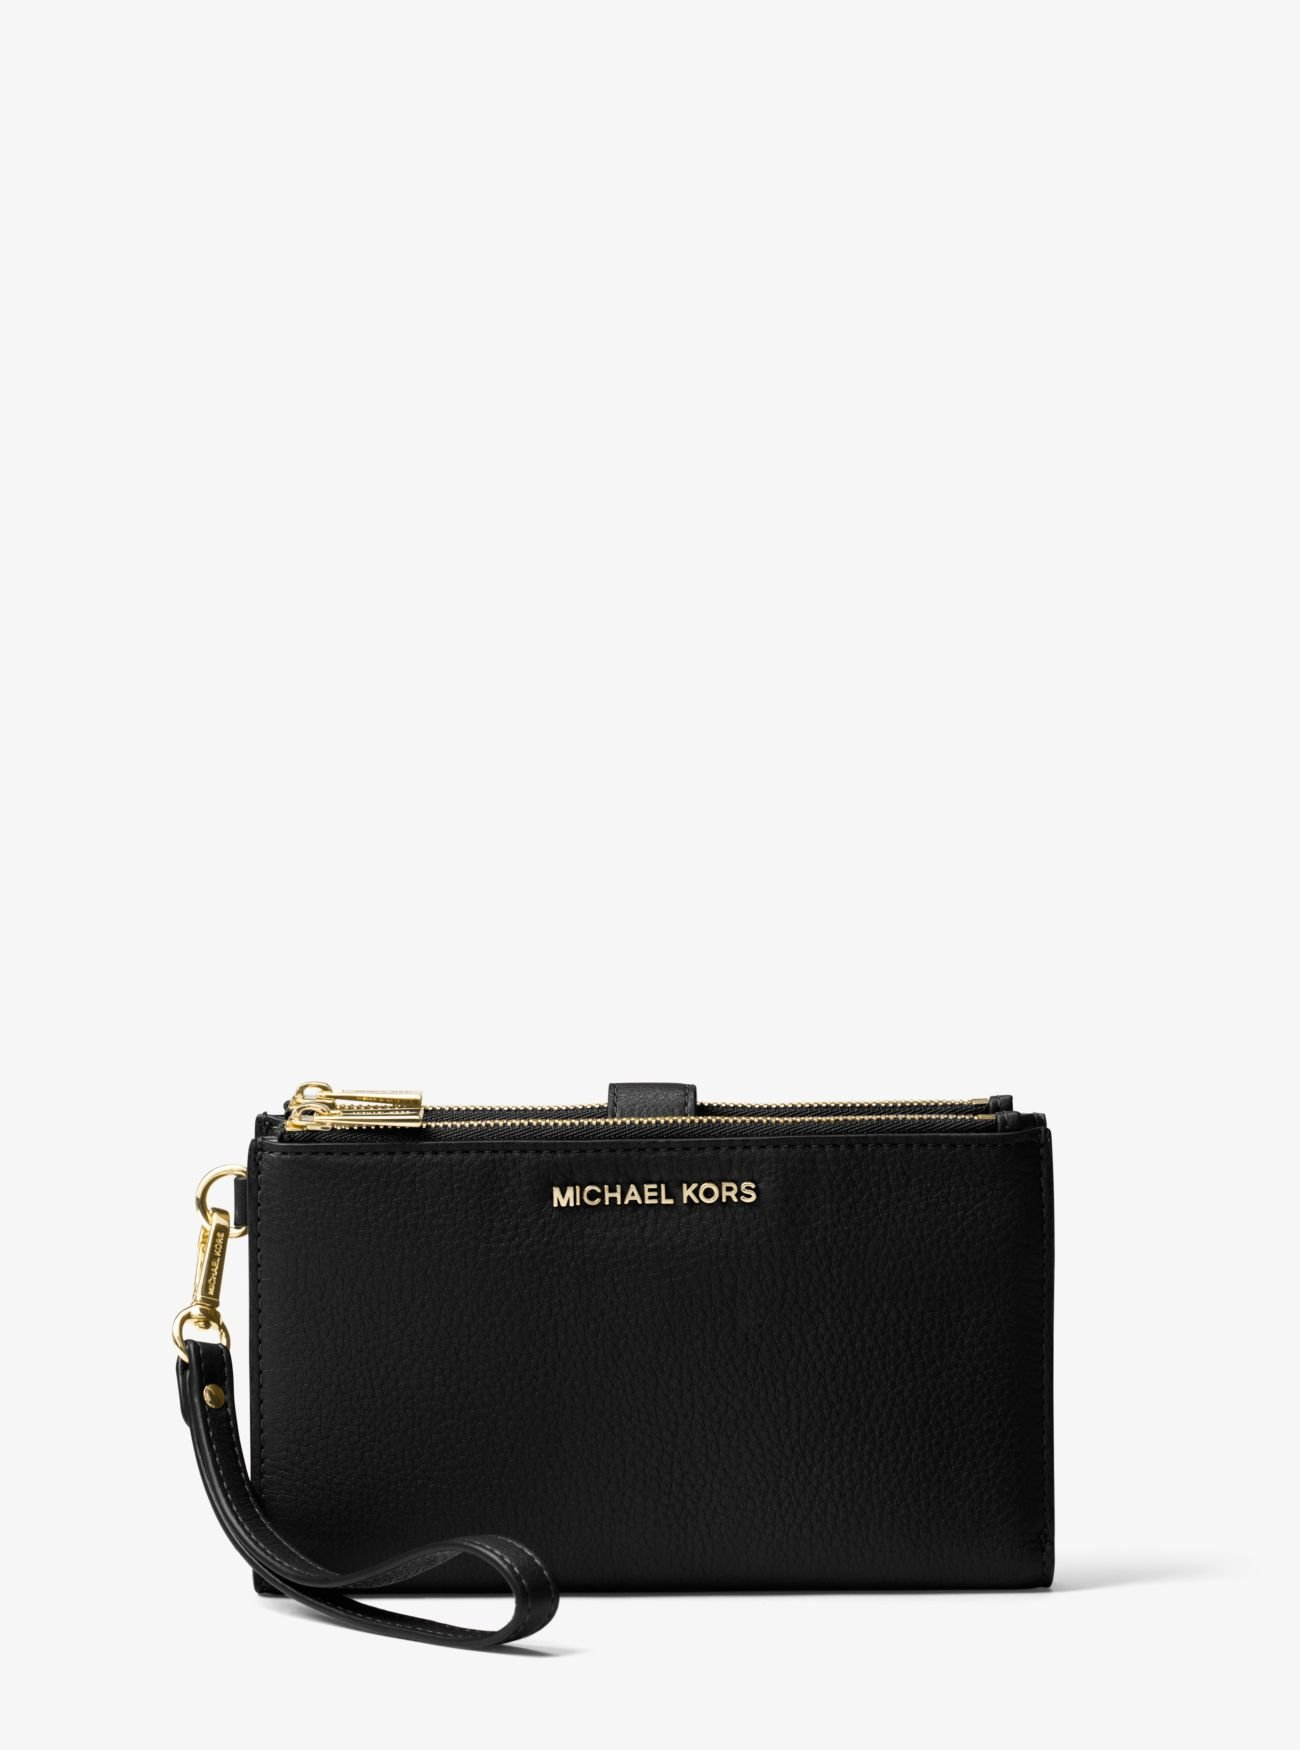 MICHAEL Michael Kors Women's Adele Double Zip Wristlet, Black, One Size by Michael Kors